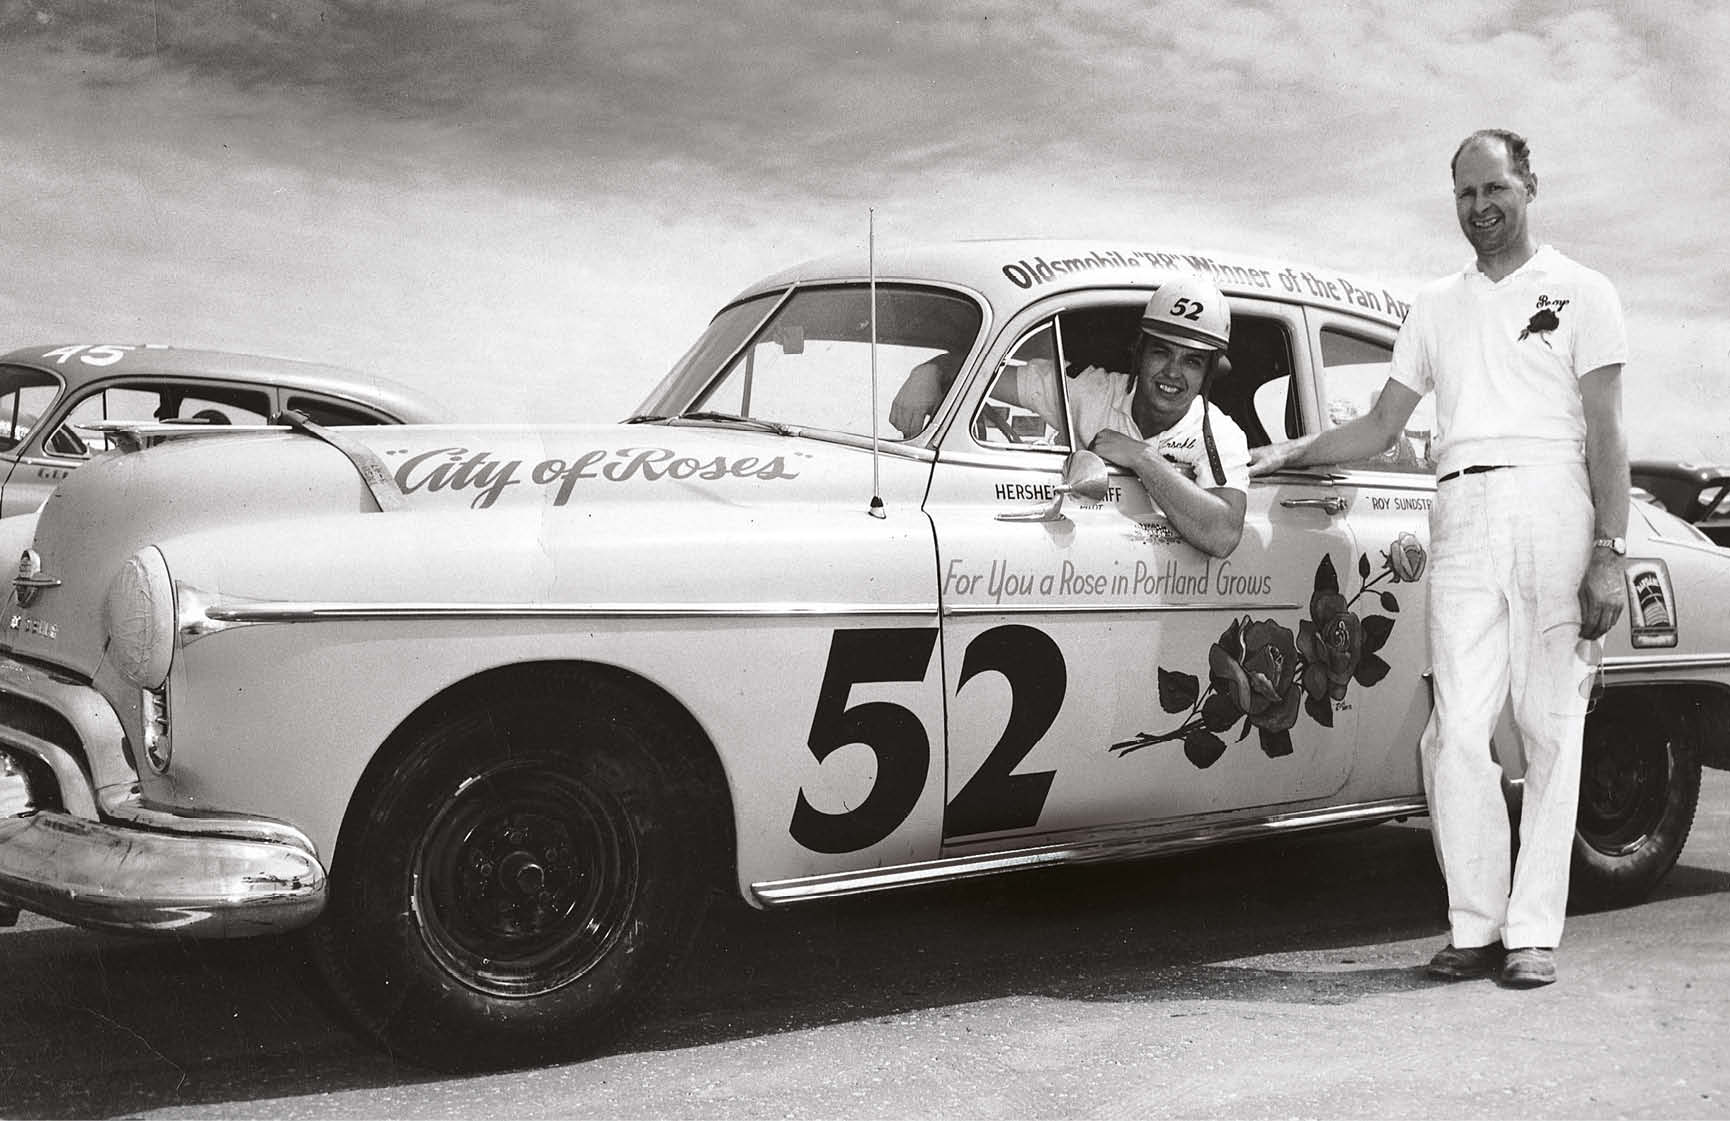 McGriff began his stock car career in the 1950s. Here he is pictured at the wheel of the Oldsmobile that he won the 1950 Mexican Road Race in with his co-driver Ray Elliott.